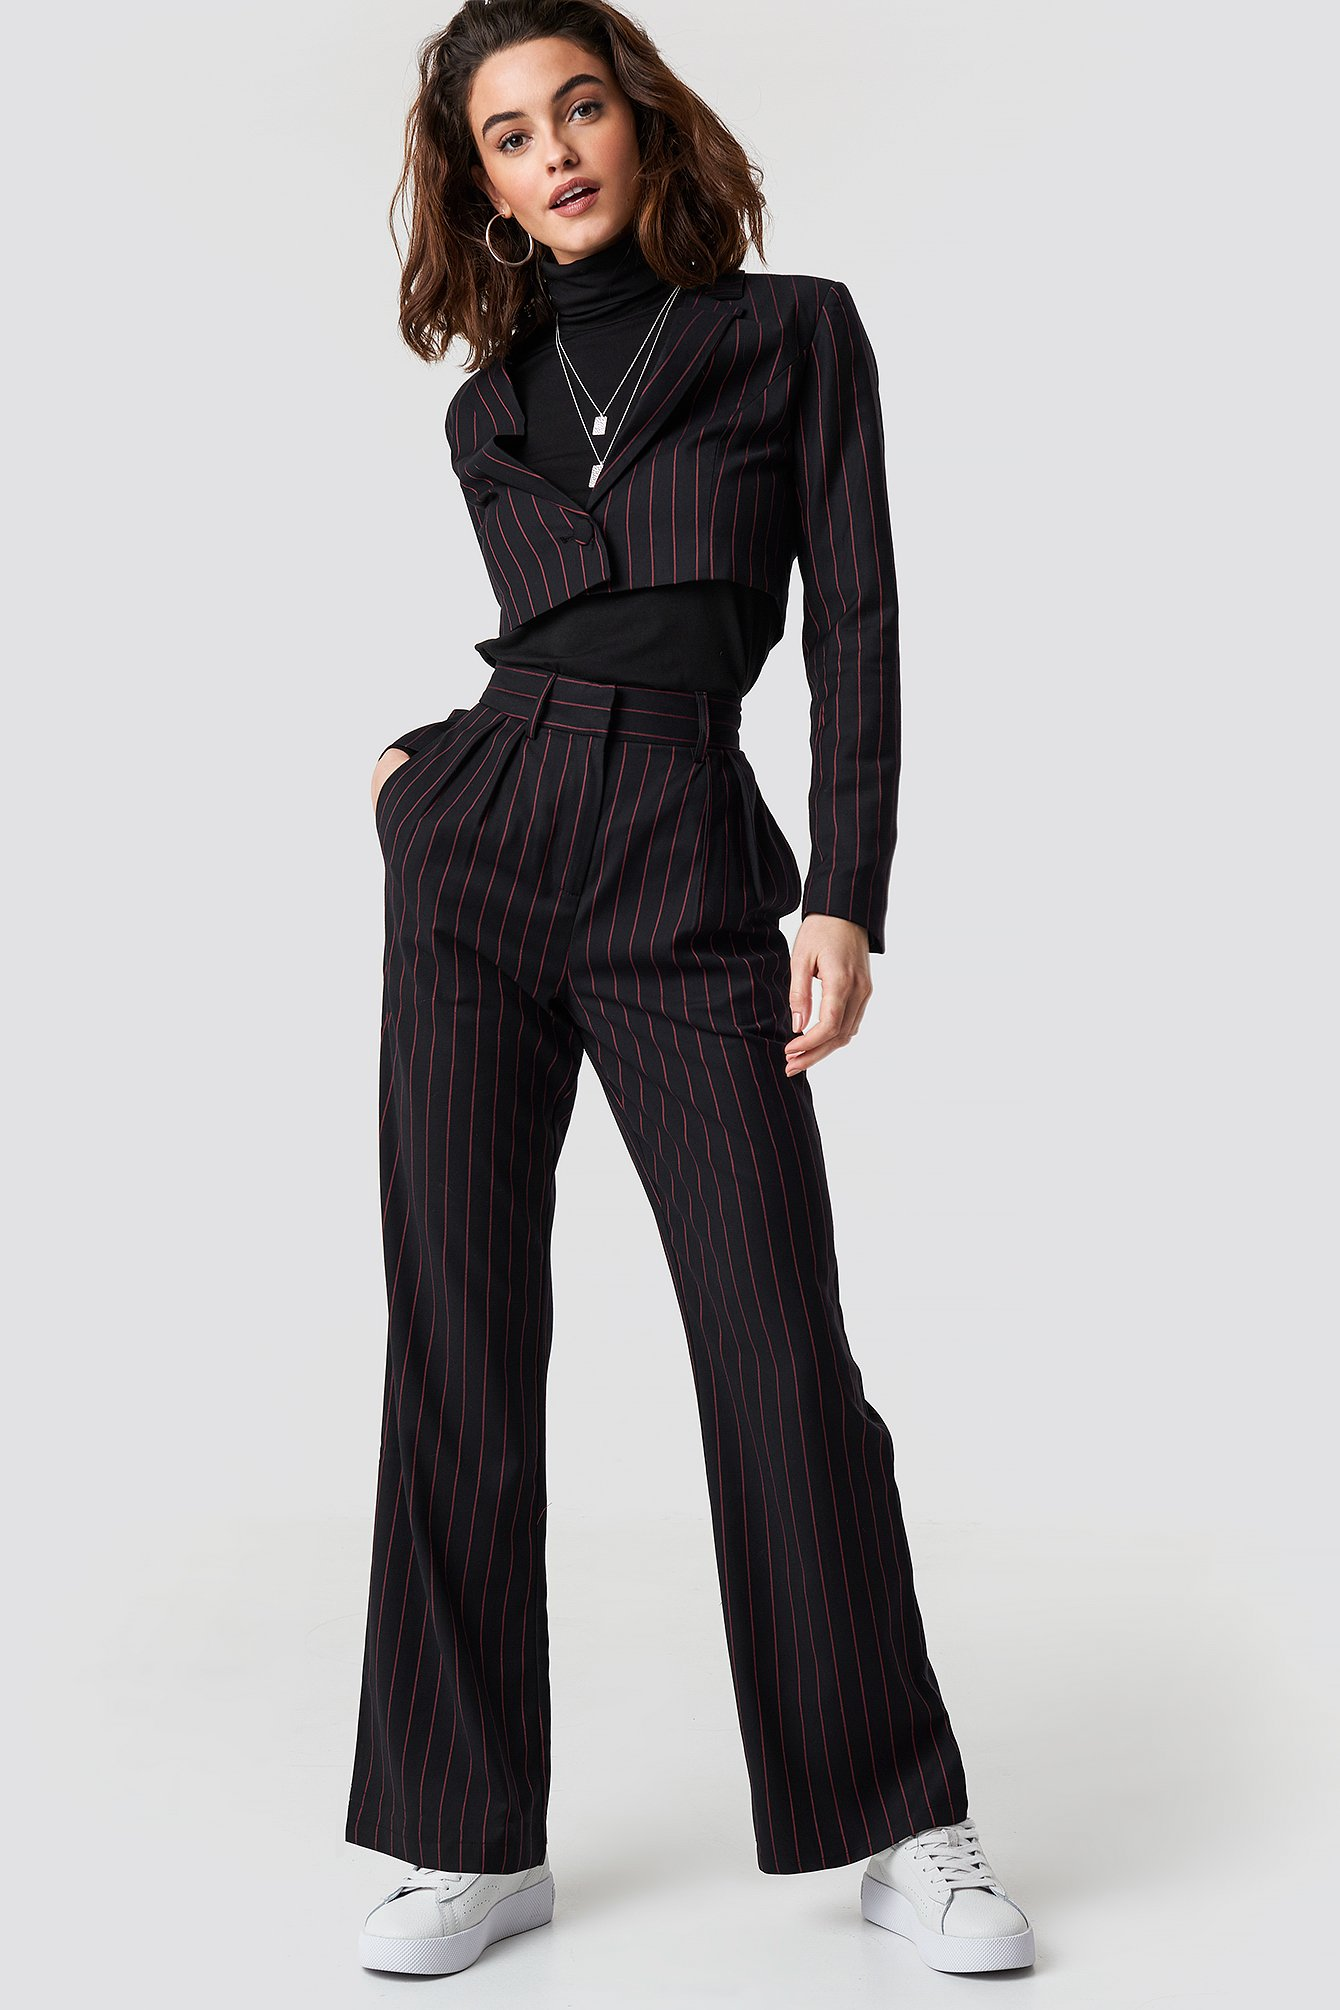 emilie briting x na-kd -  Pinstriped High Waist Flared Pants - Black